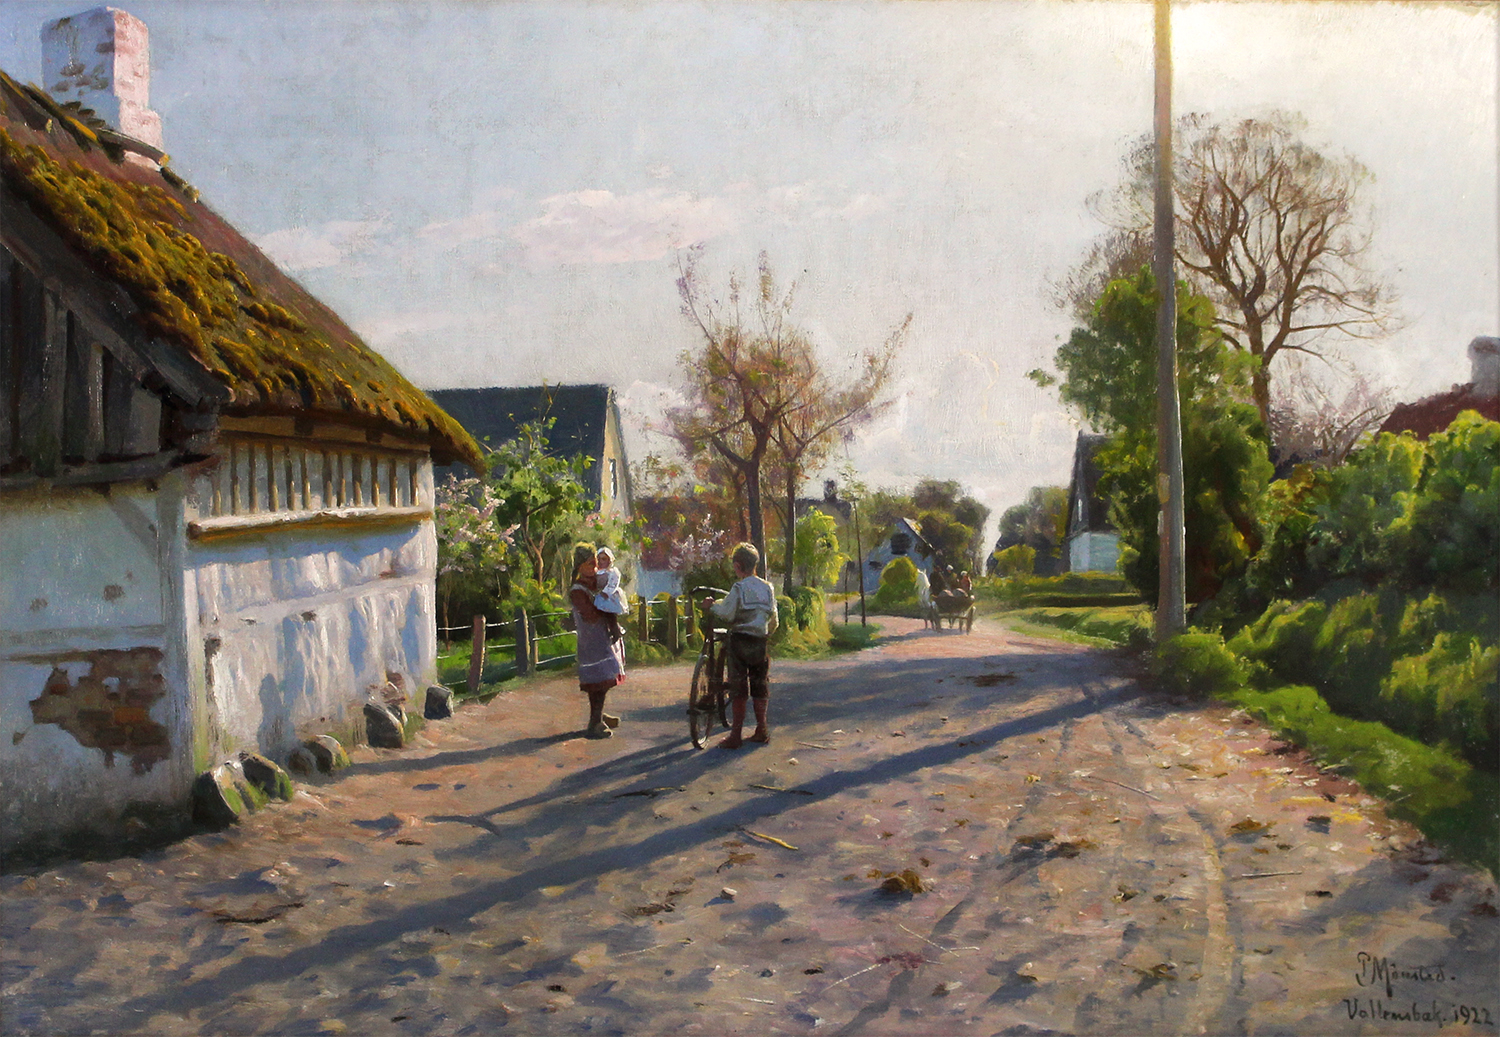 Peder M. Monsted (Danish 1859-1941) 'Late Spring Day in Vallensbæk'